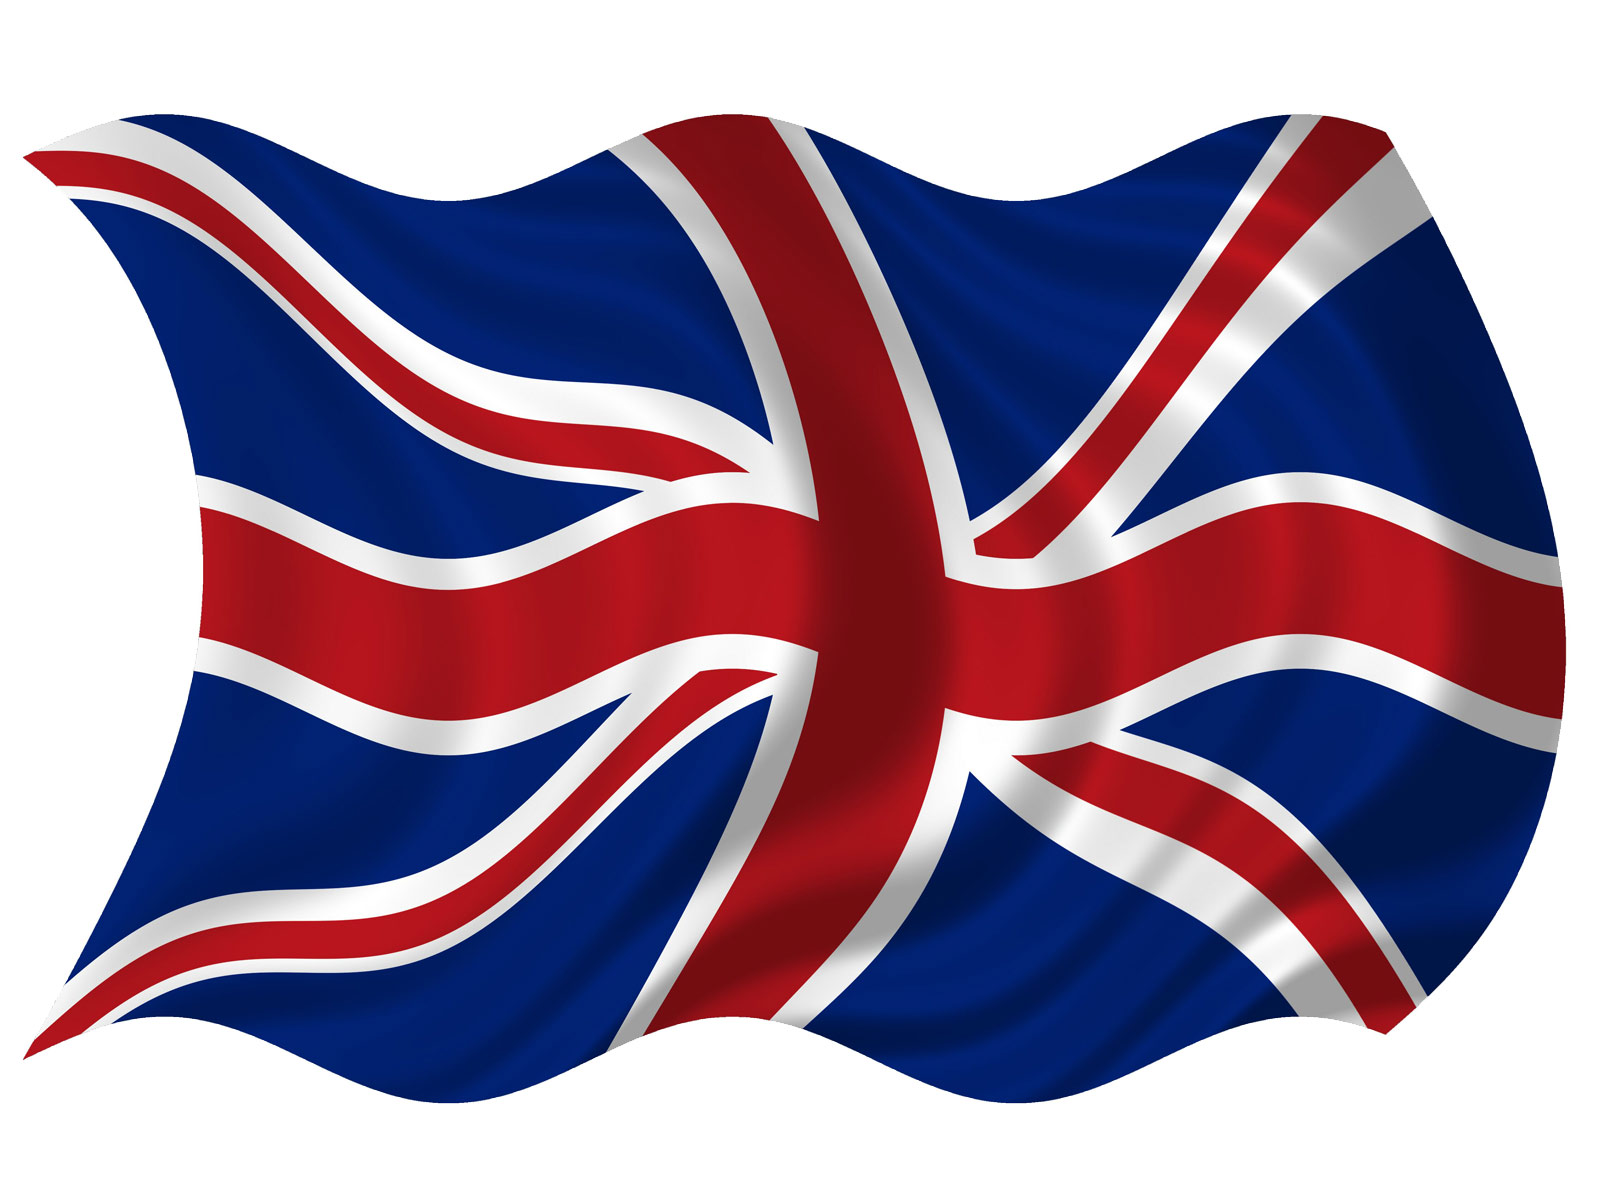 Union Jack British Flag From The Countries Flags Category Date